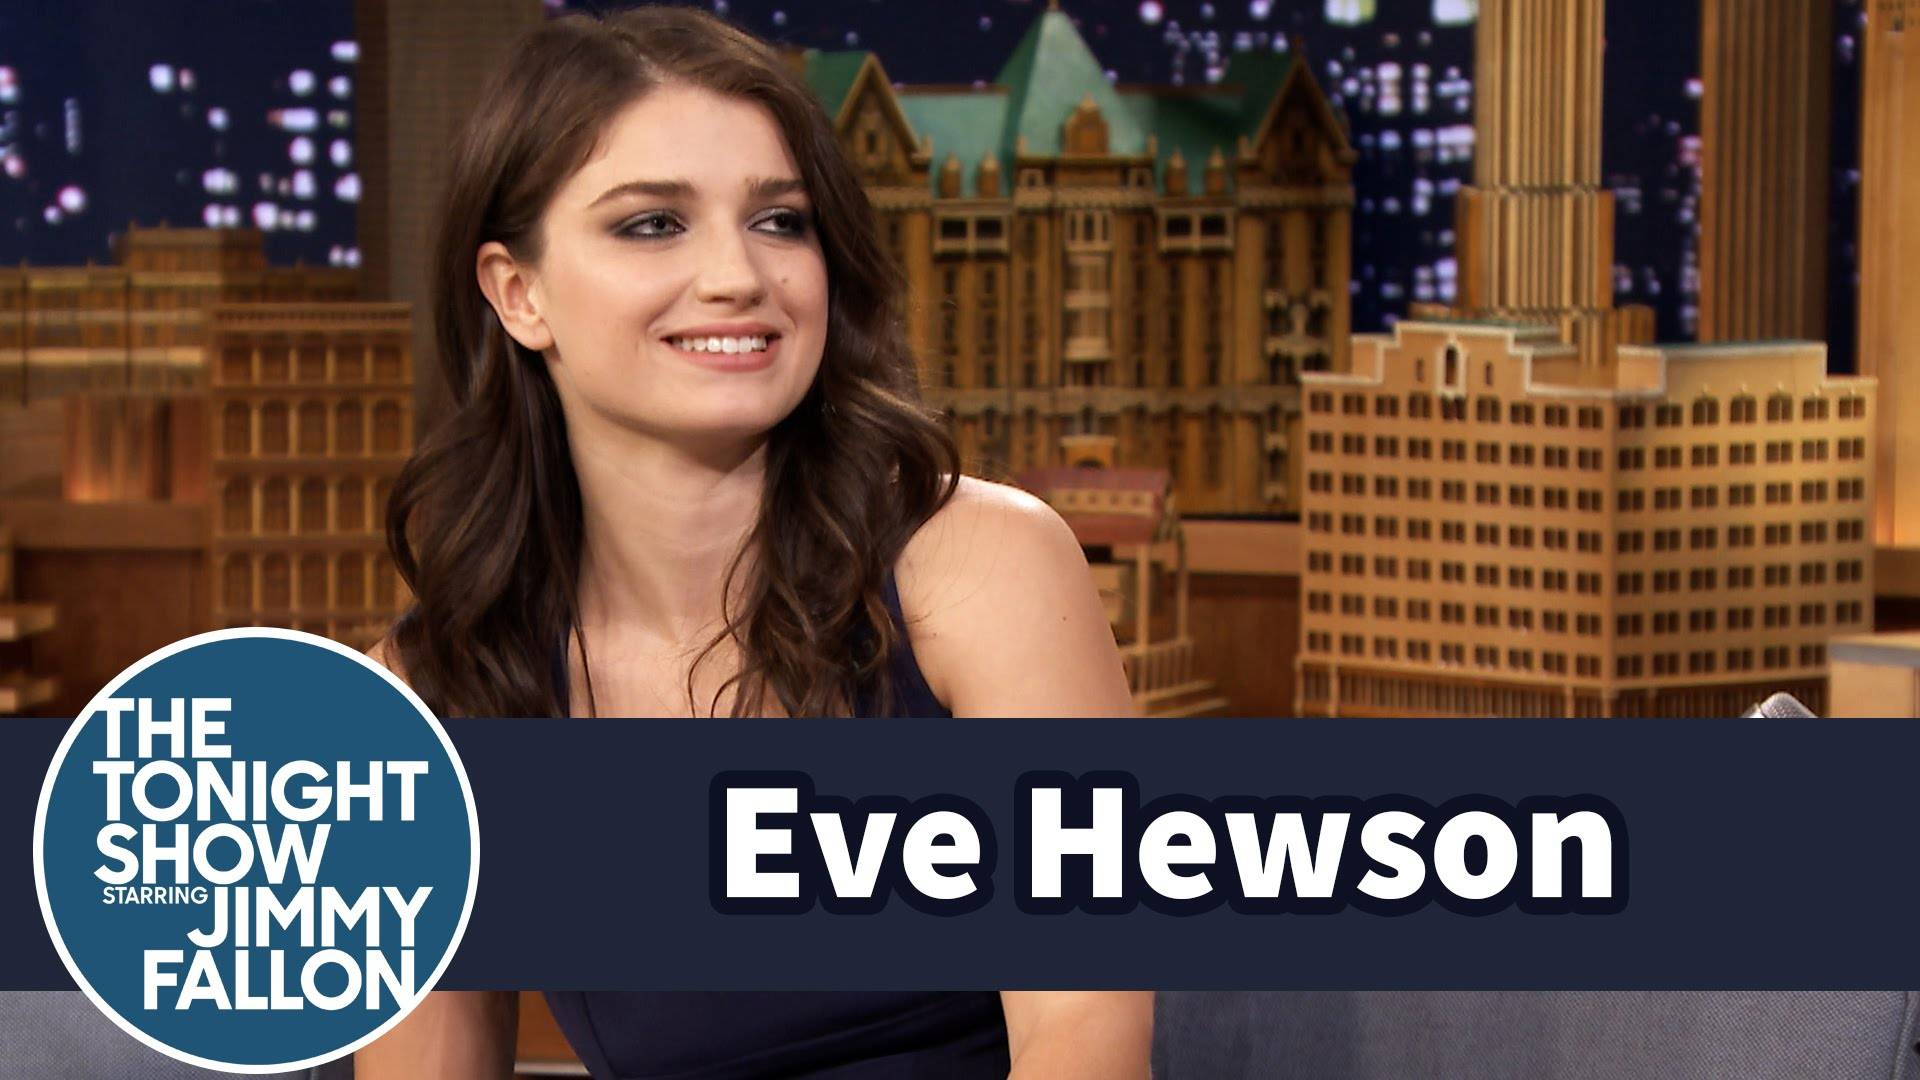 Watch further List furthermore Eve Hewson Prank Called Justin Timberlake besides Watch together with Watch. on timberlake fallon youtube